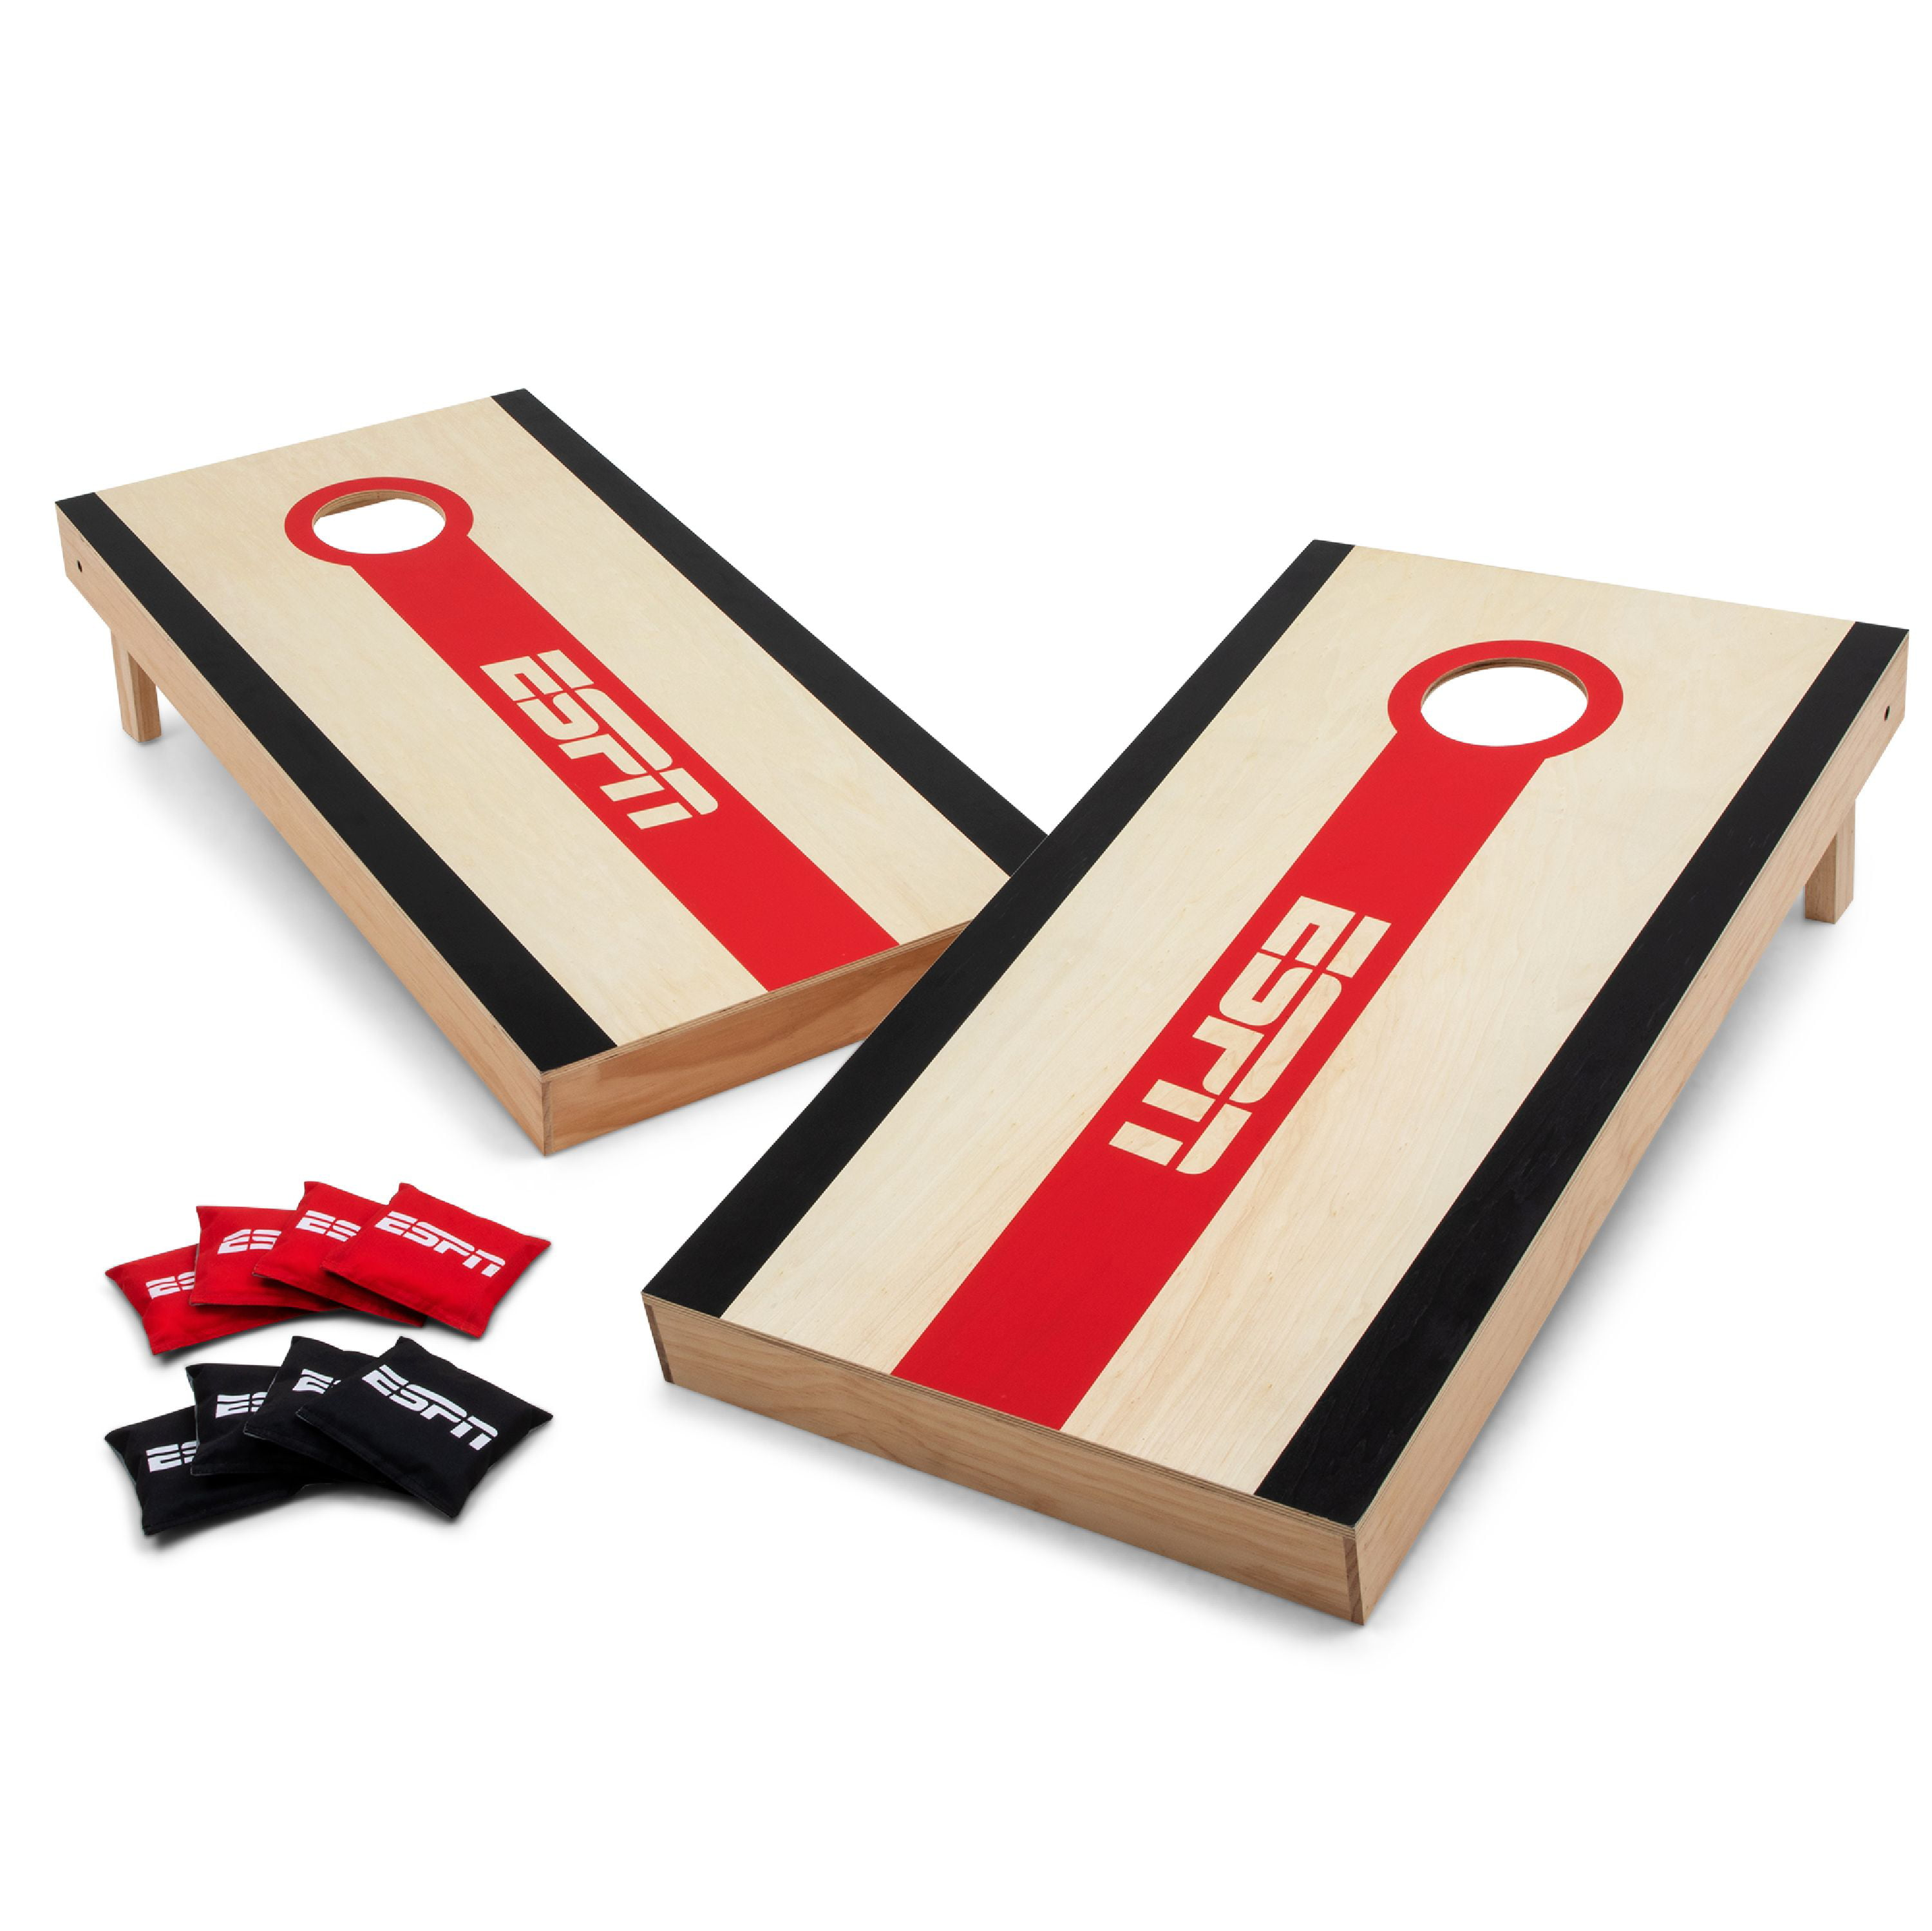 Strange Espn Regulation Size Premium Cornhole Bean Bag Toss Game Set With 8 All Weather Dual Sided Slick N Stick Bean Bags Aca Official Tournament Size 2 X Evergreenethics Interior Chair Design Evergreenethicsorg